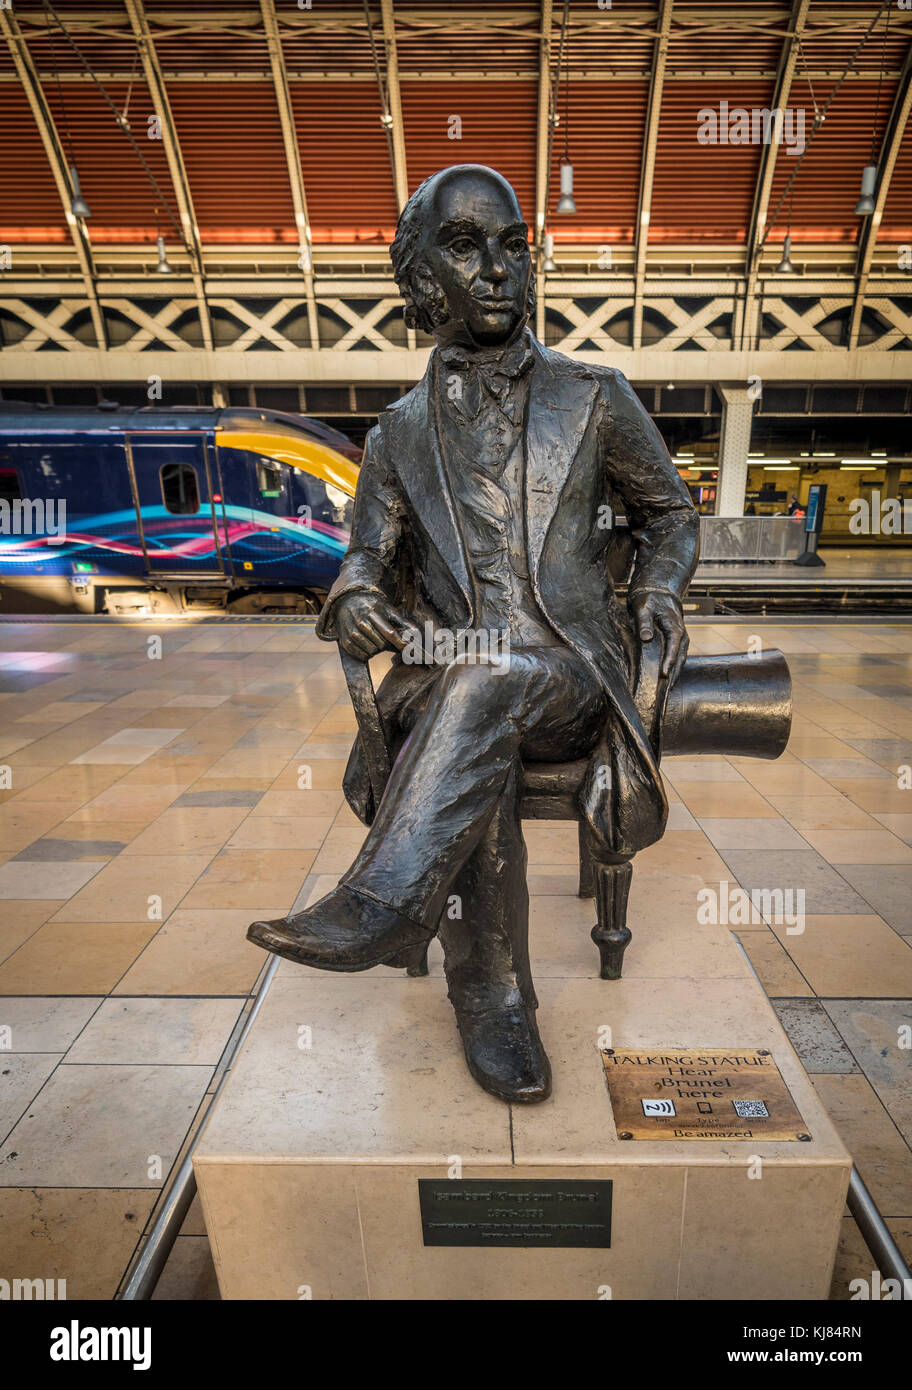 isambard kingdom brunel Isambard kingdom brunel 27k likes isambard kingdom brunel, frs (9 april 1806 - 15 september 1859), was a british engineer he is best known for the.